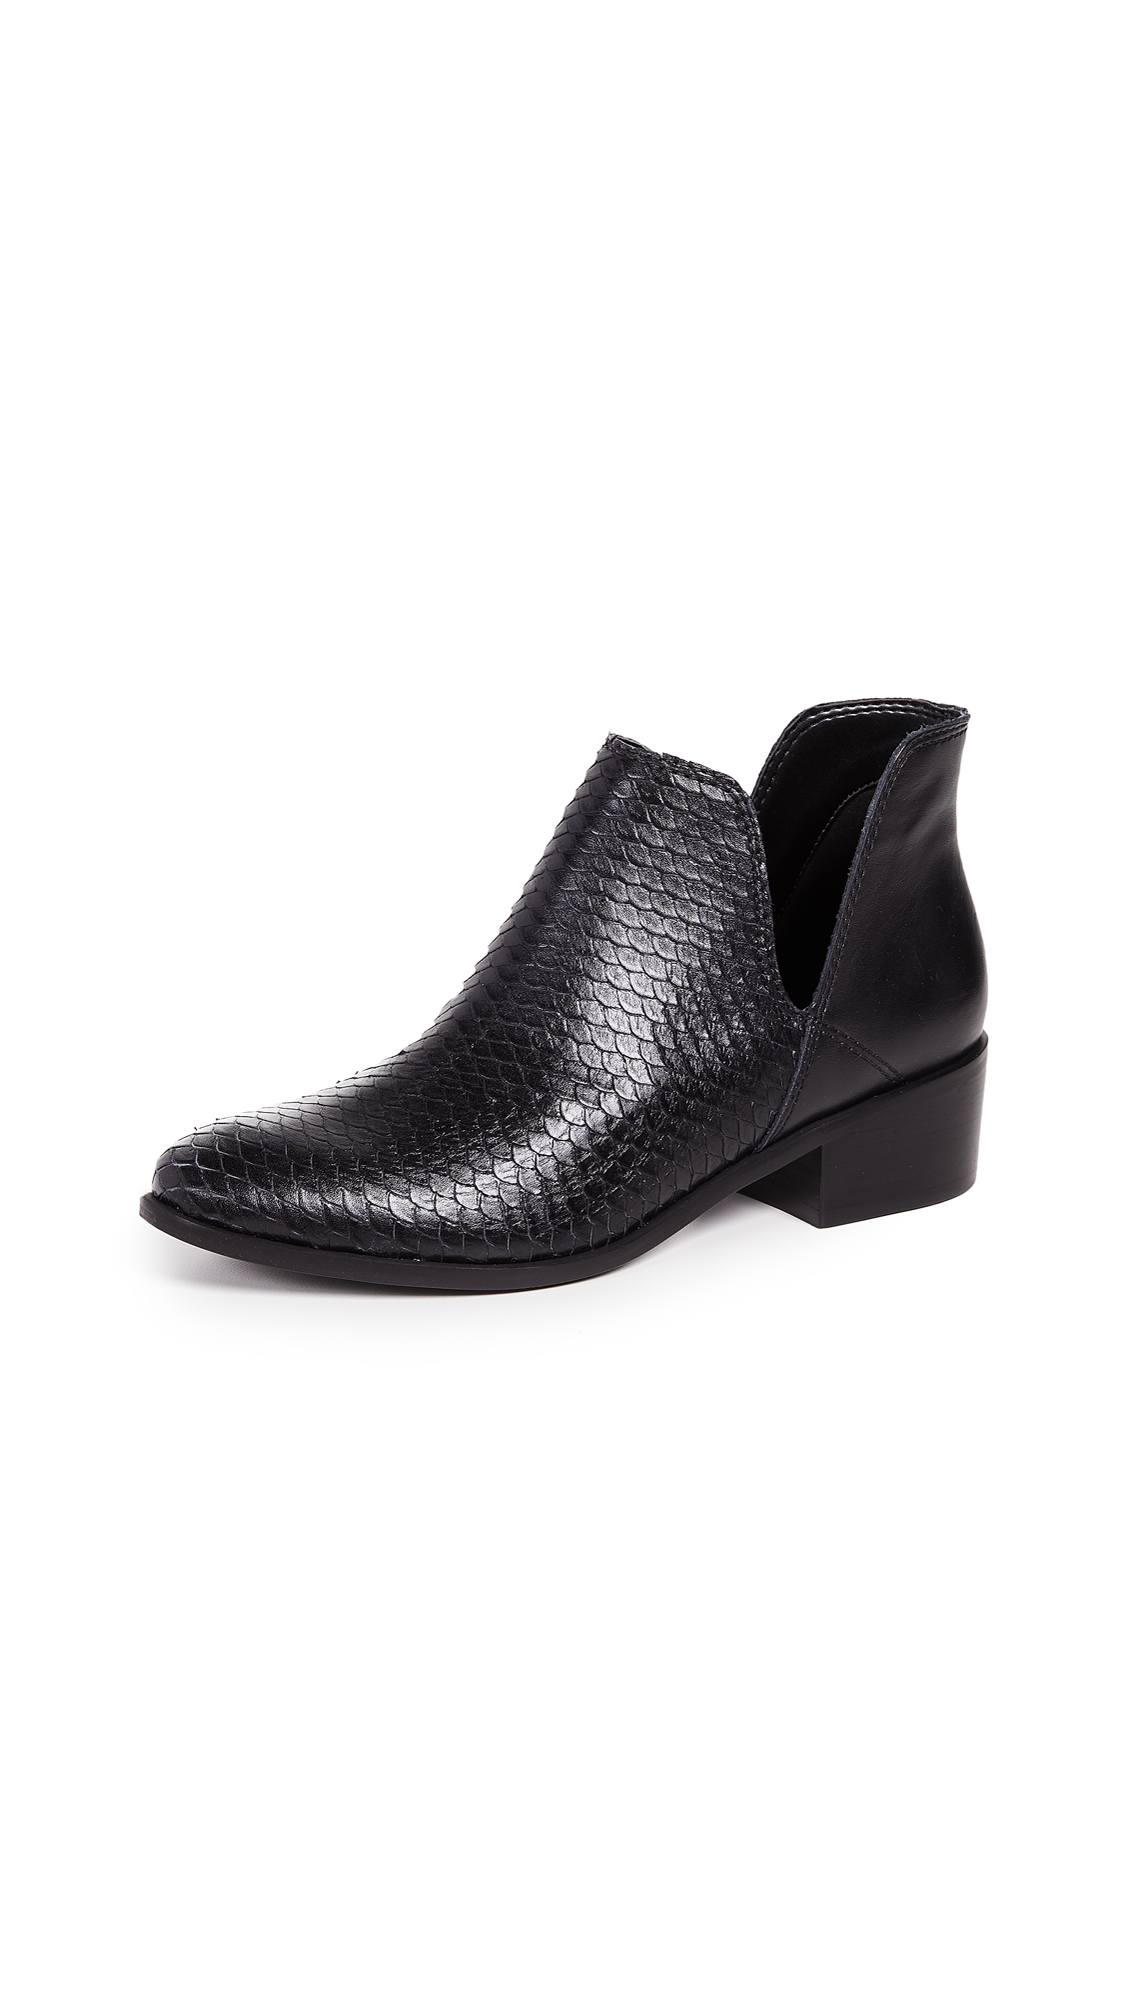 KAANAS Como Scale Booties - Black